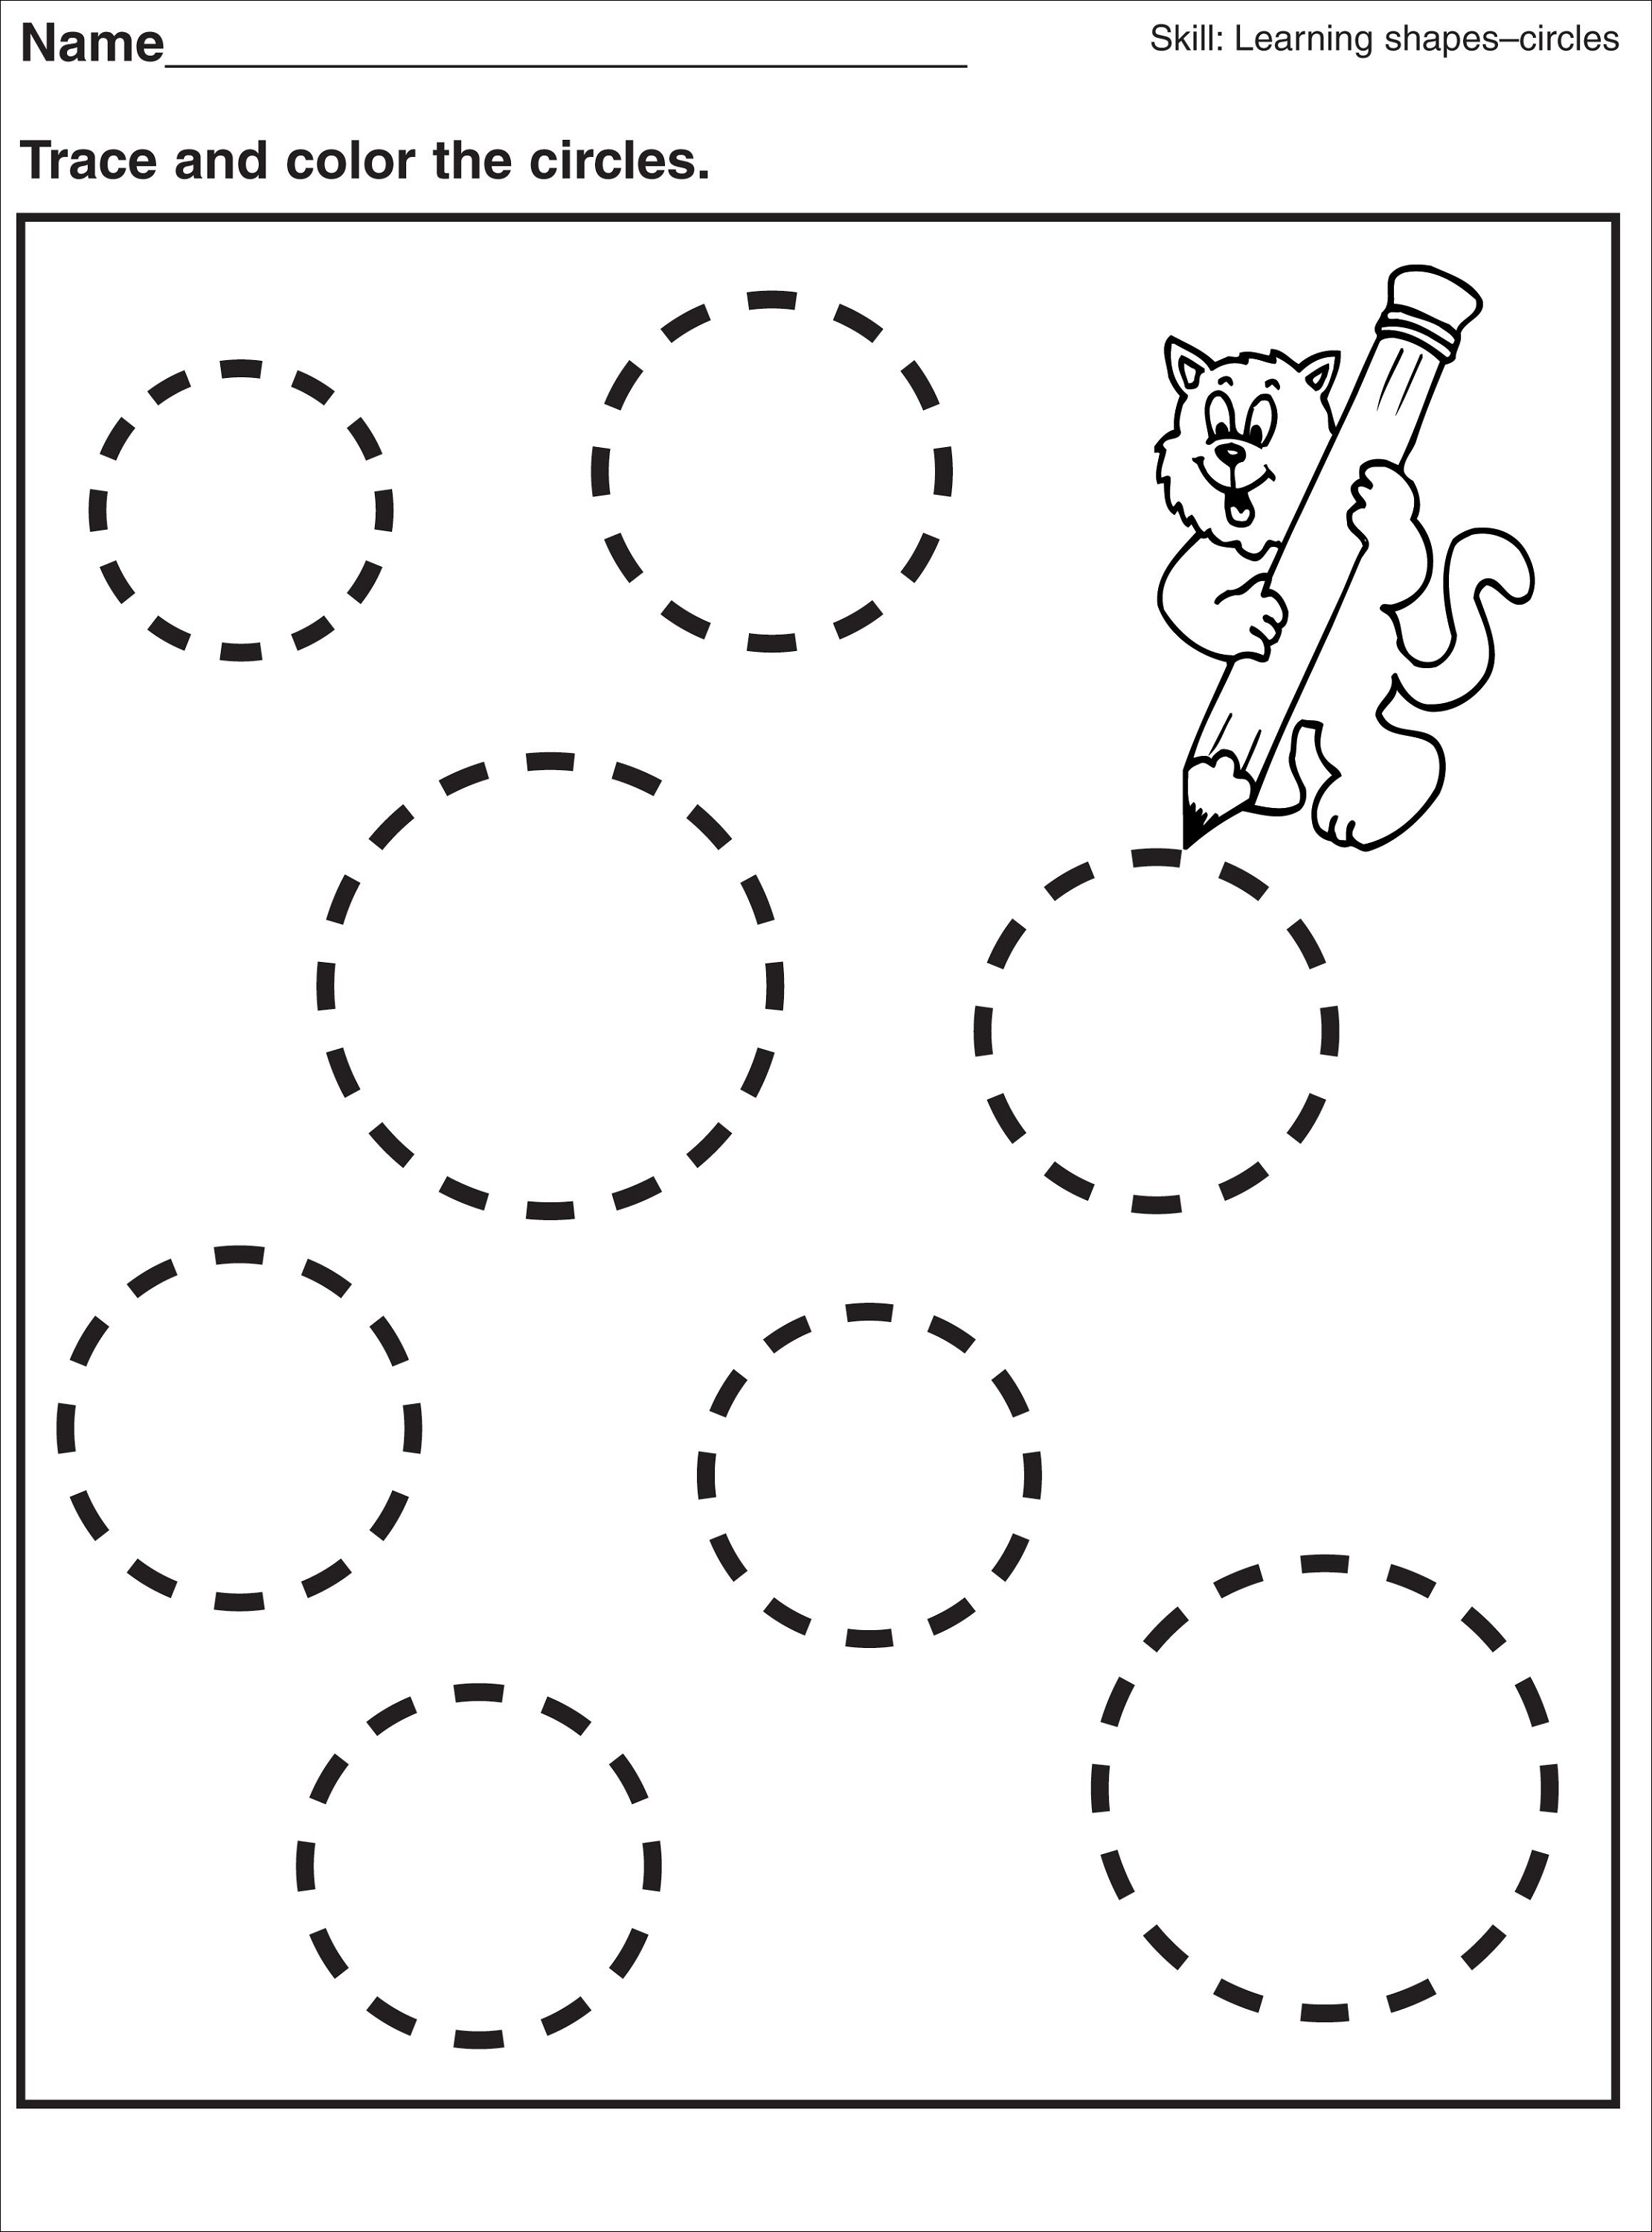 Tracing Pages for Preschool Activity